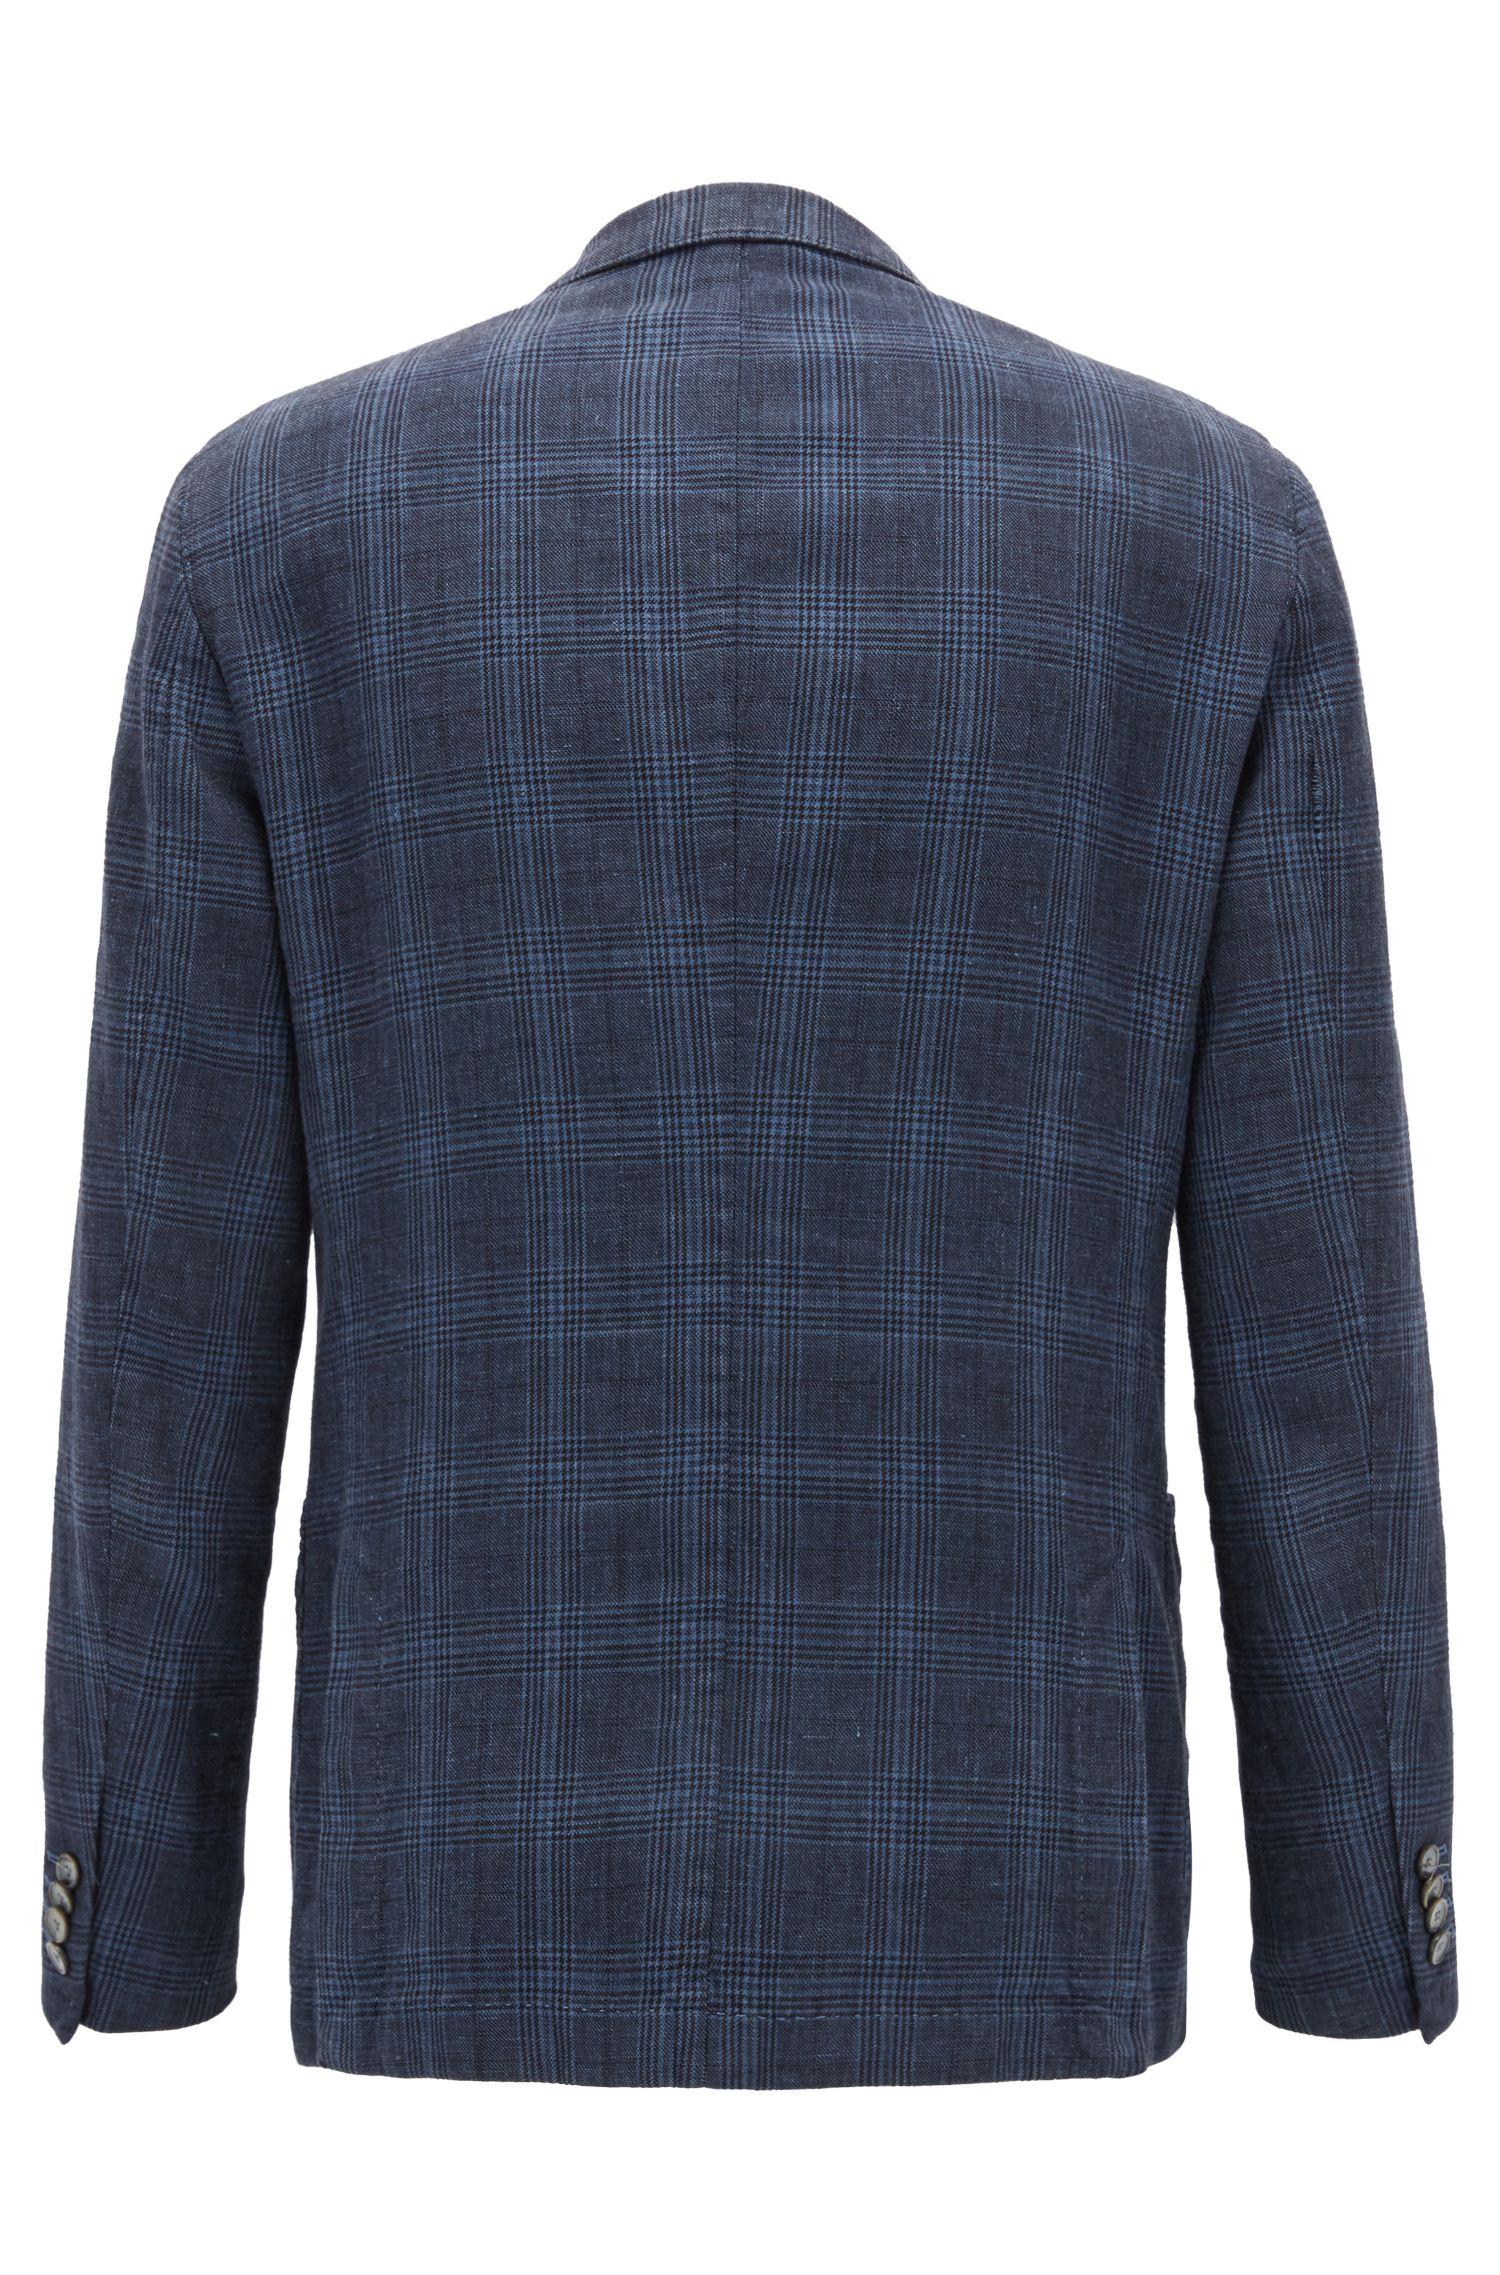 Slim-fit jacket in checked cotton and linen